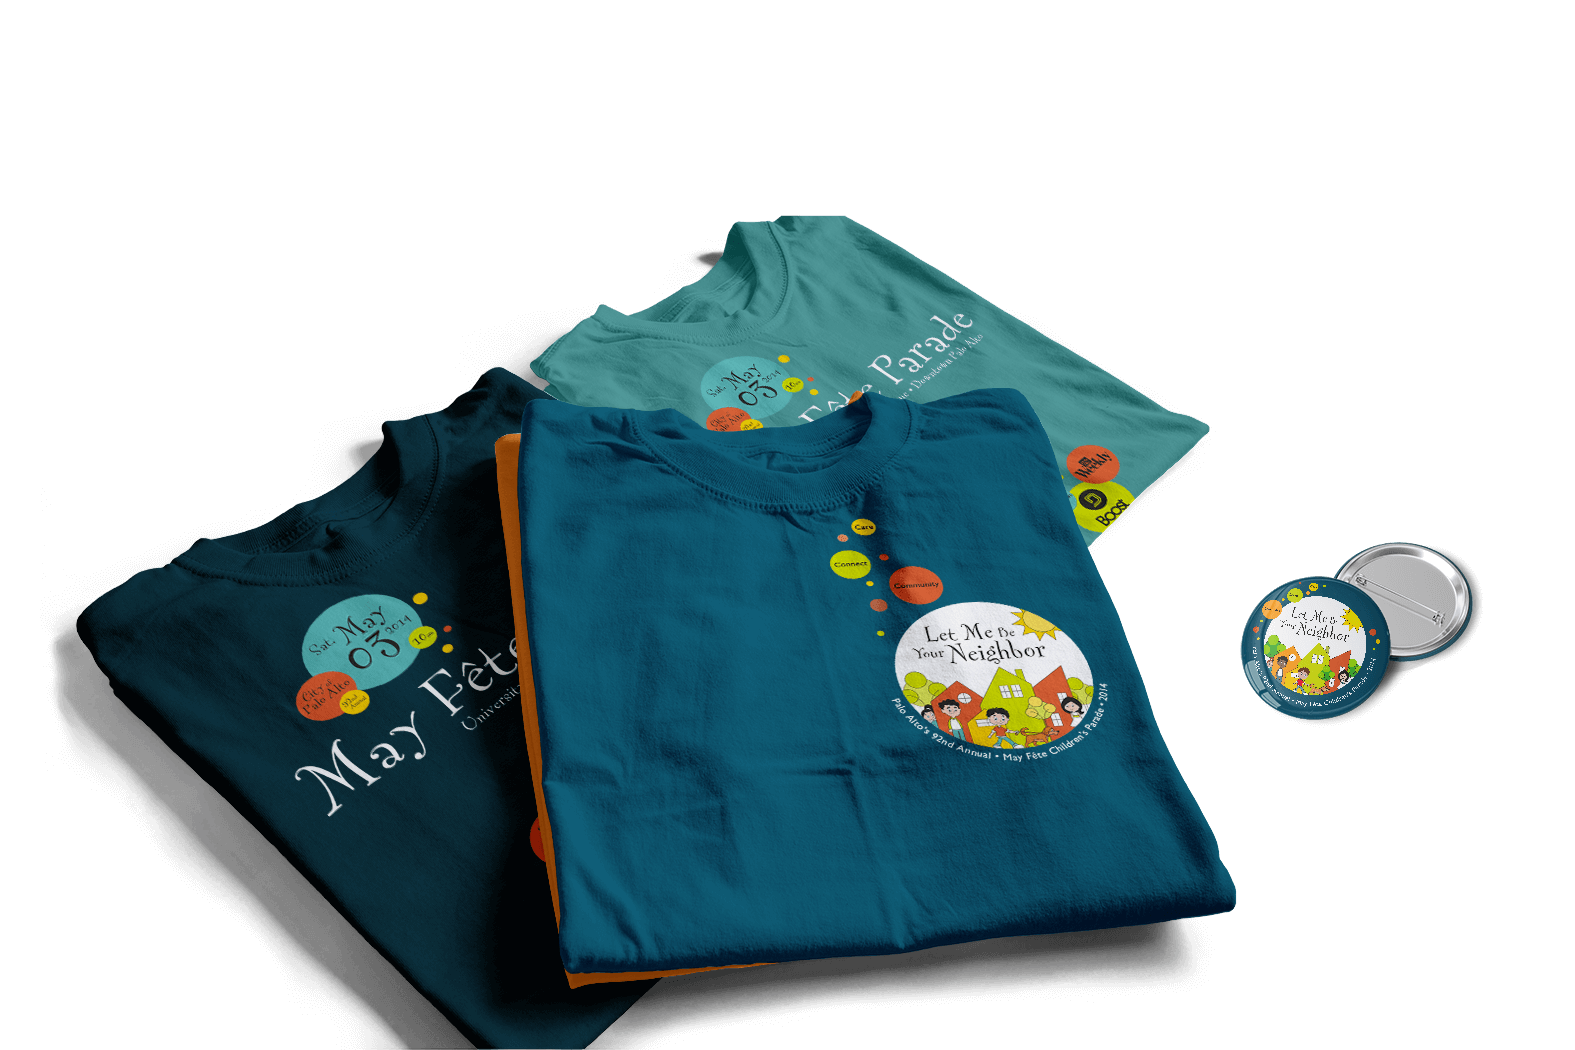 may fete t-shirts and button